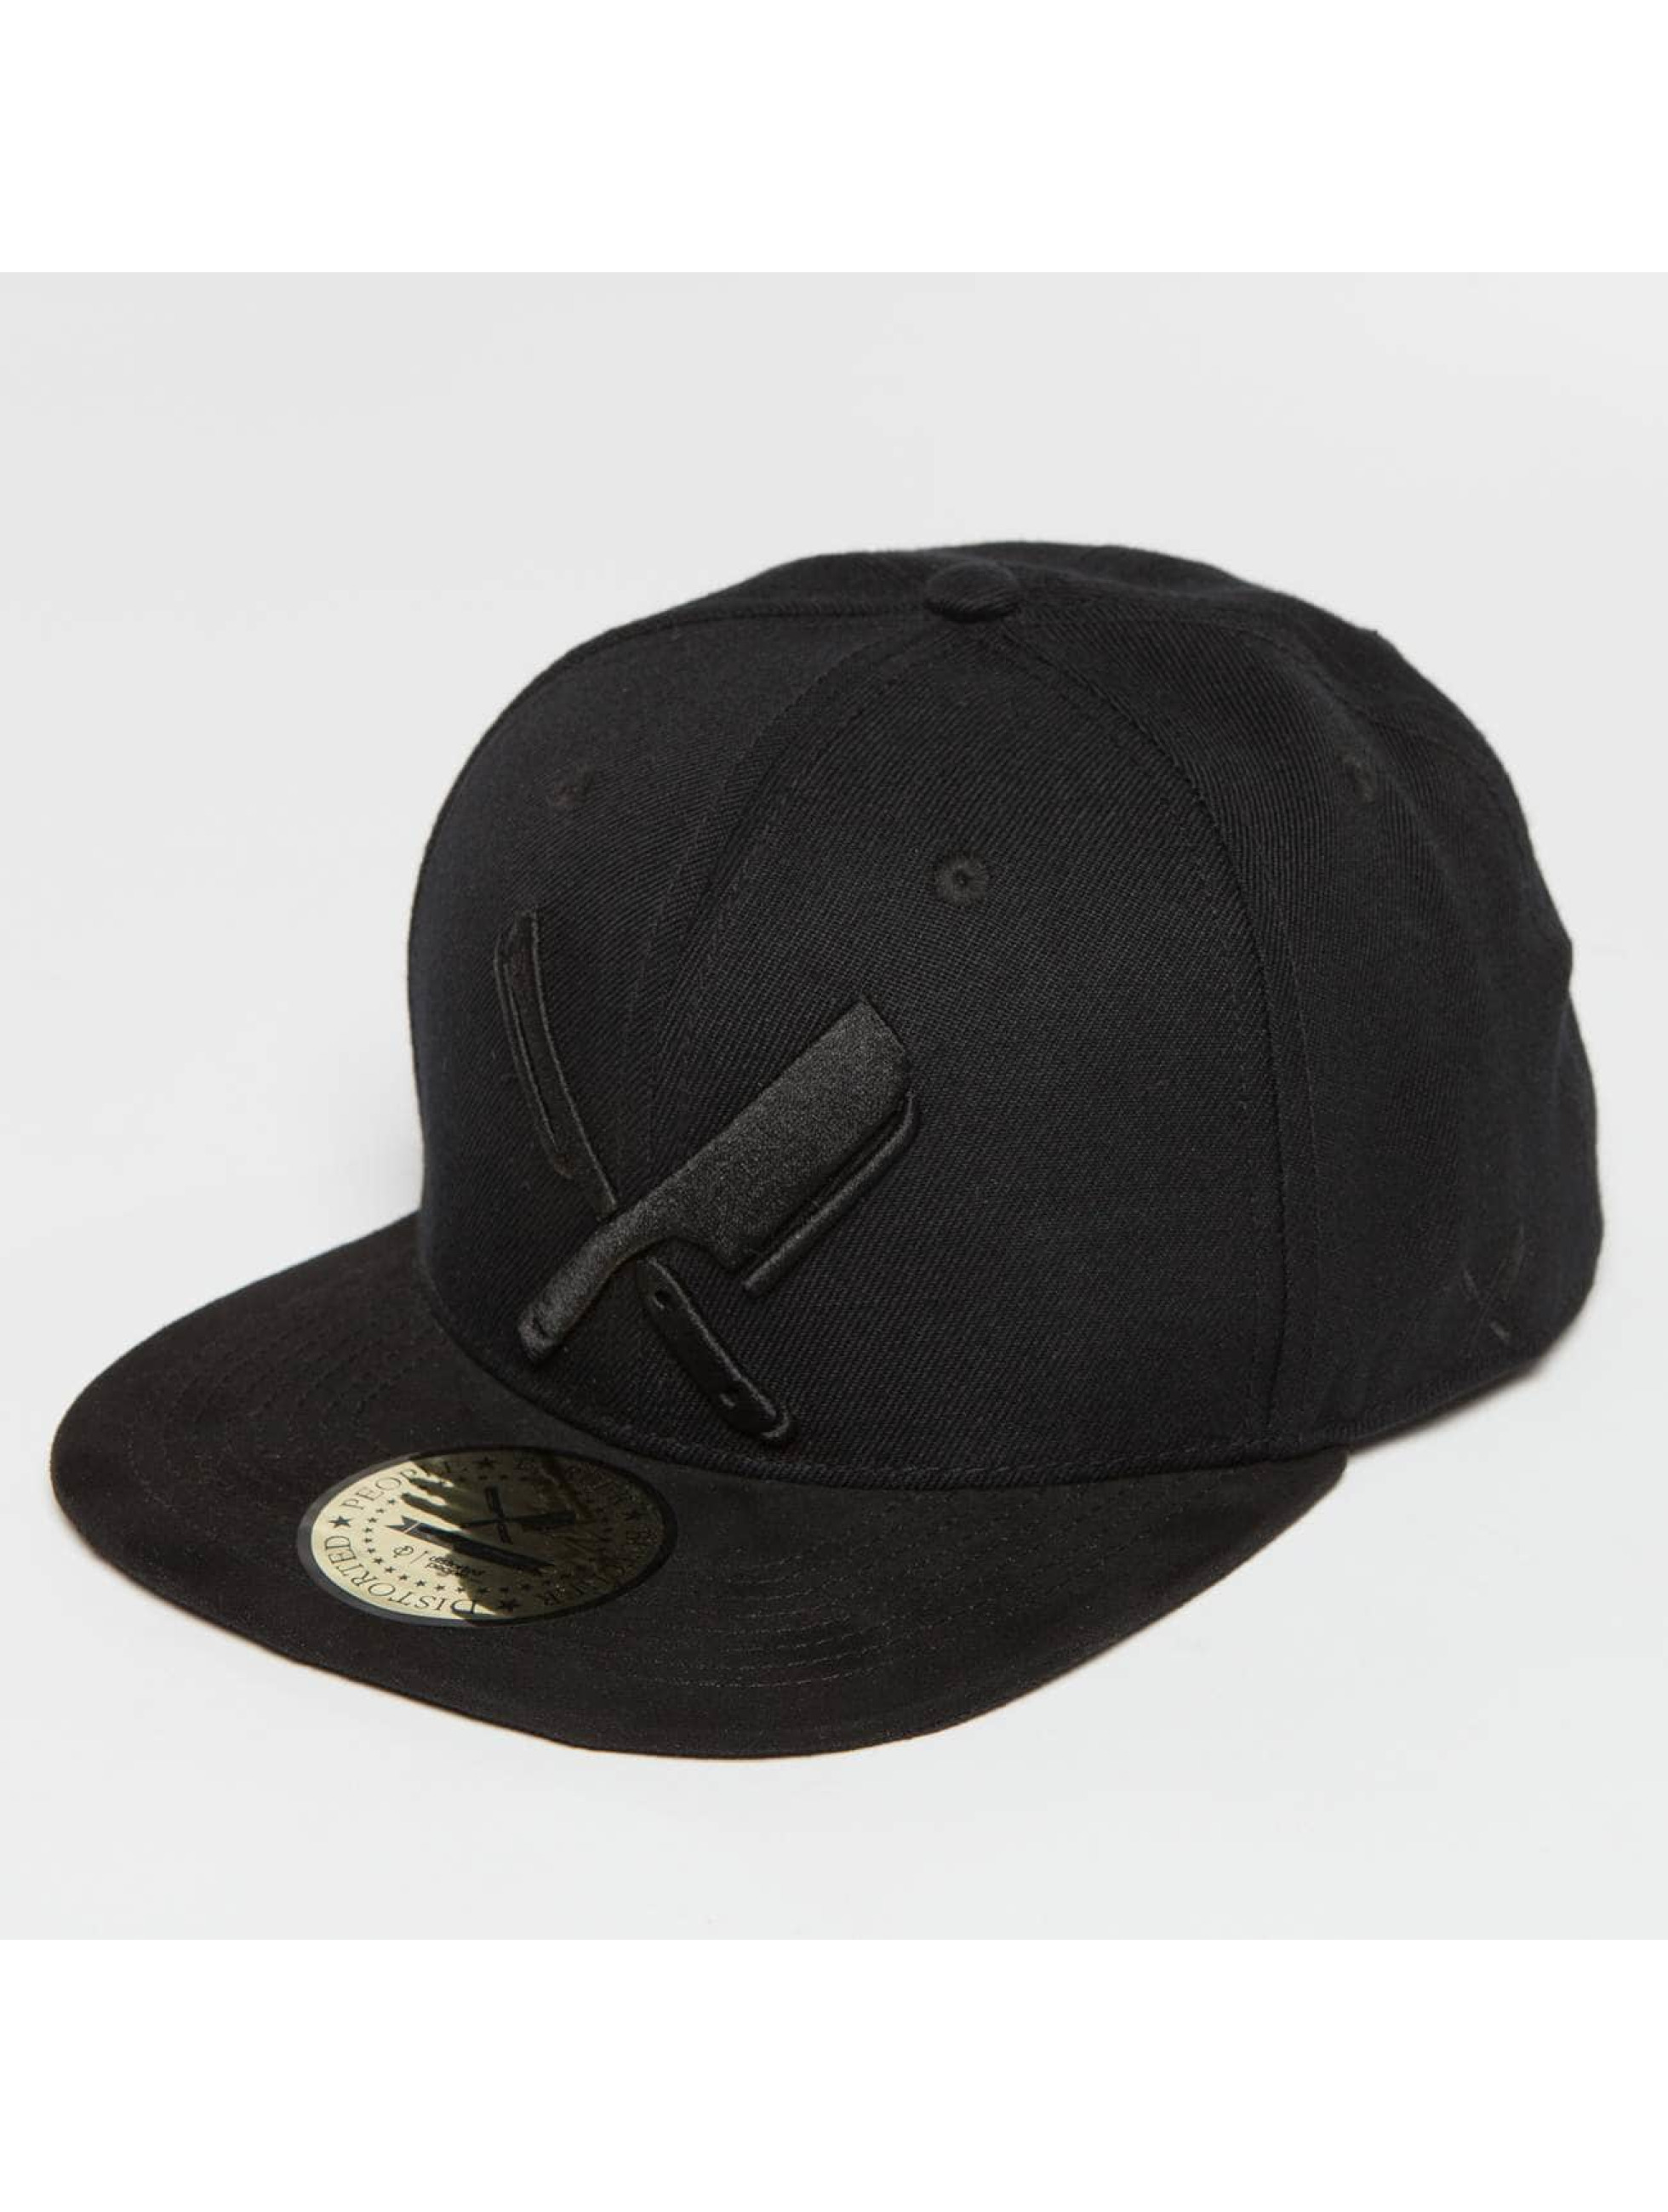 Distorted People Gorra Snapback Barber & Butcher negro